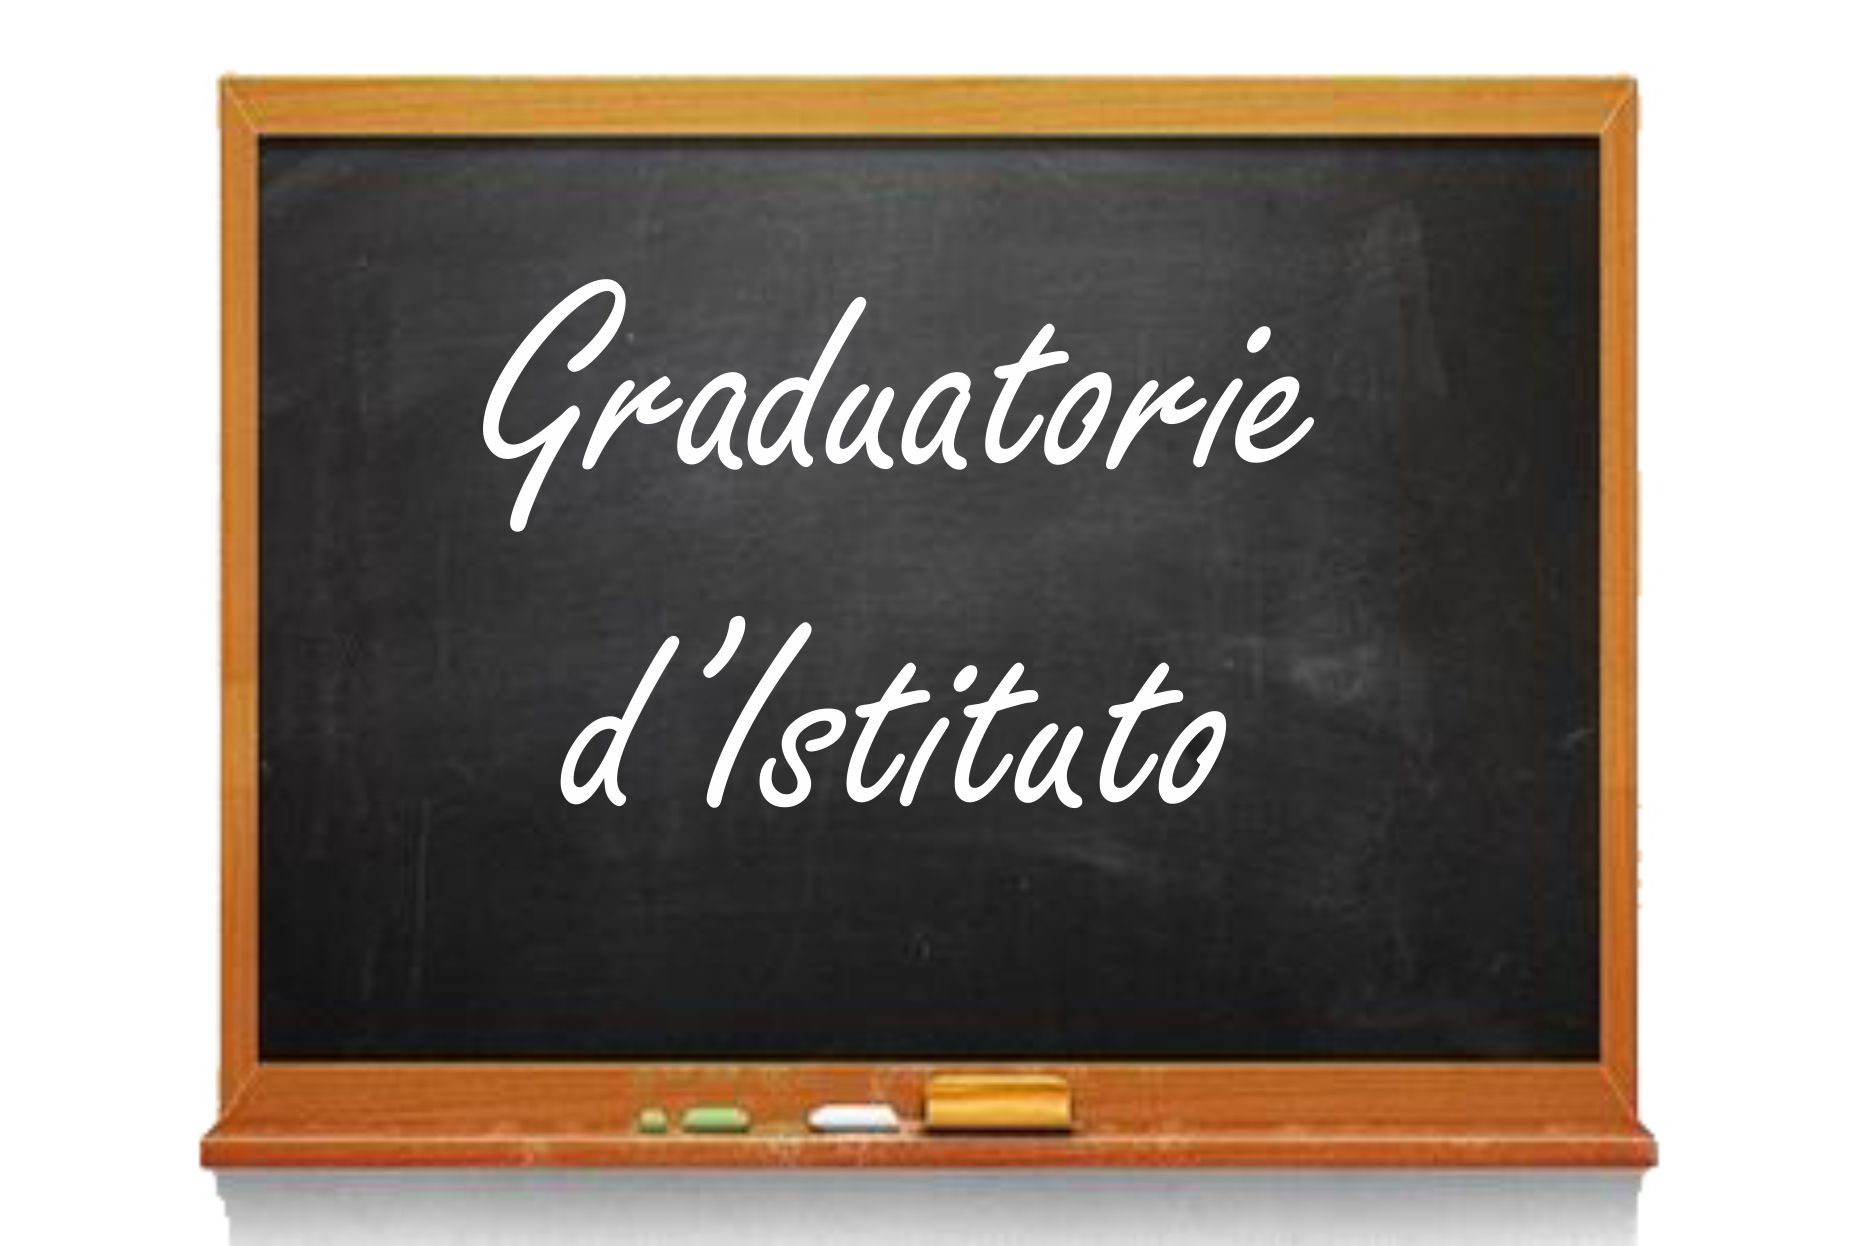 NotizieScuola. it Graduatorie di Istituto